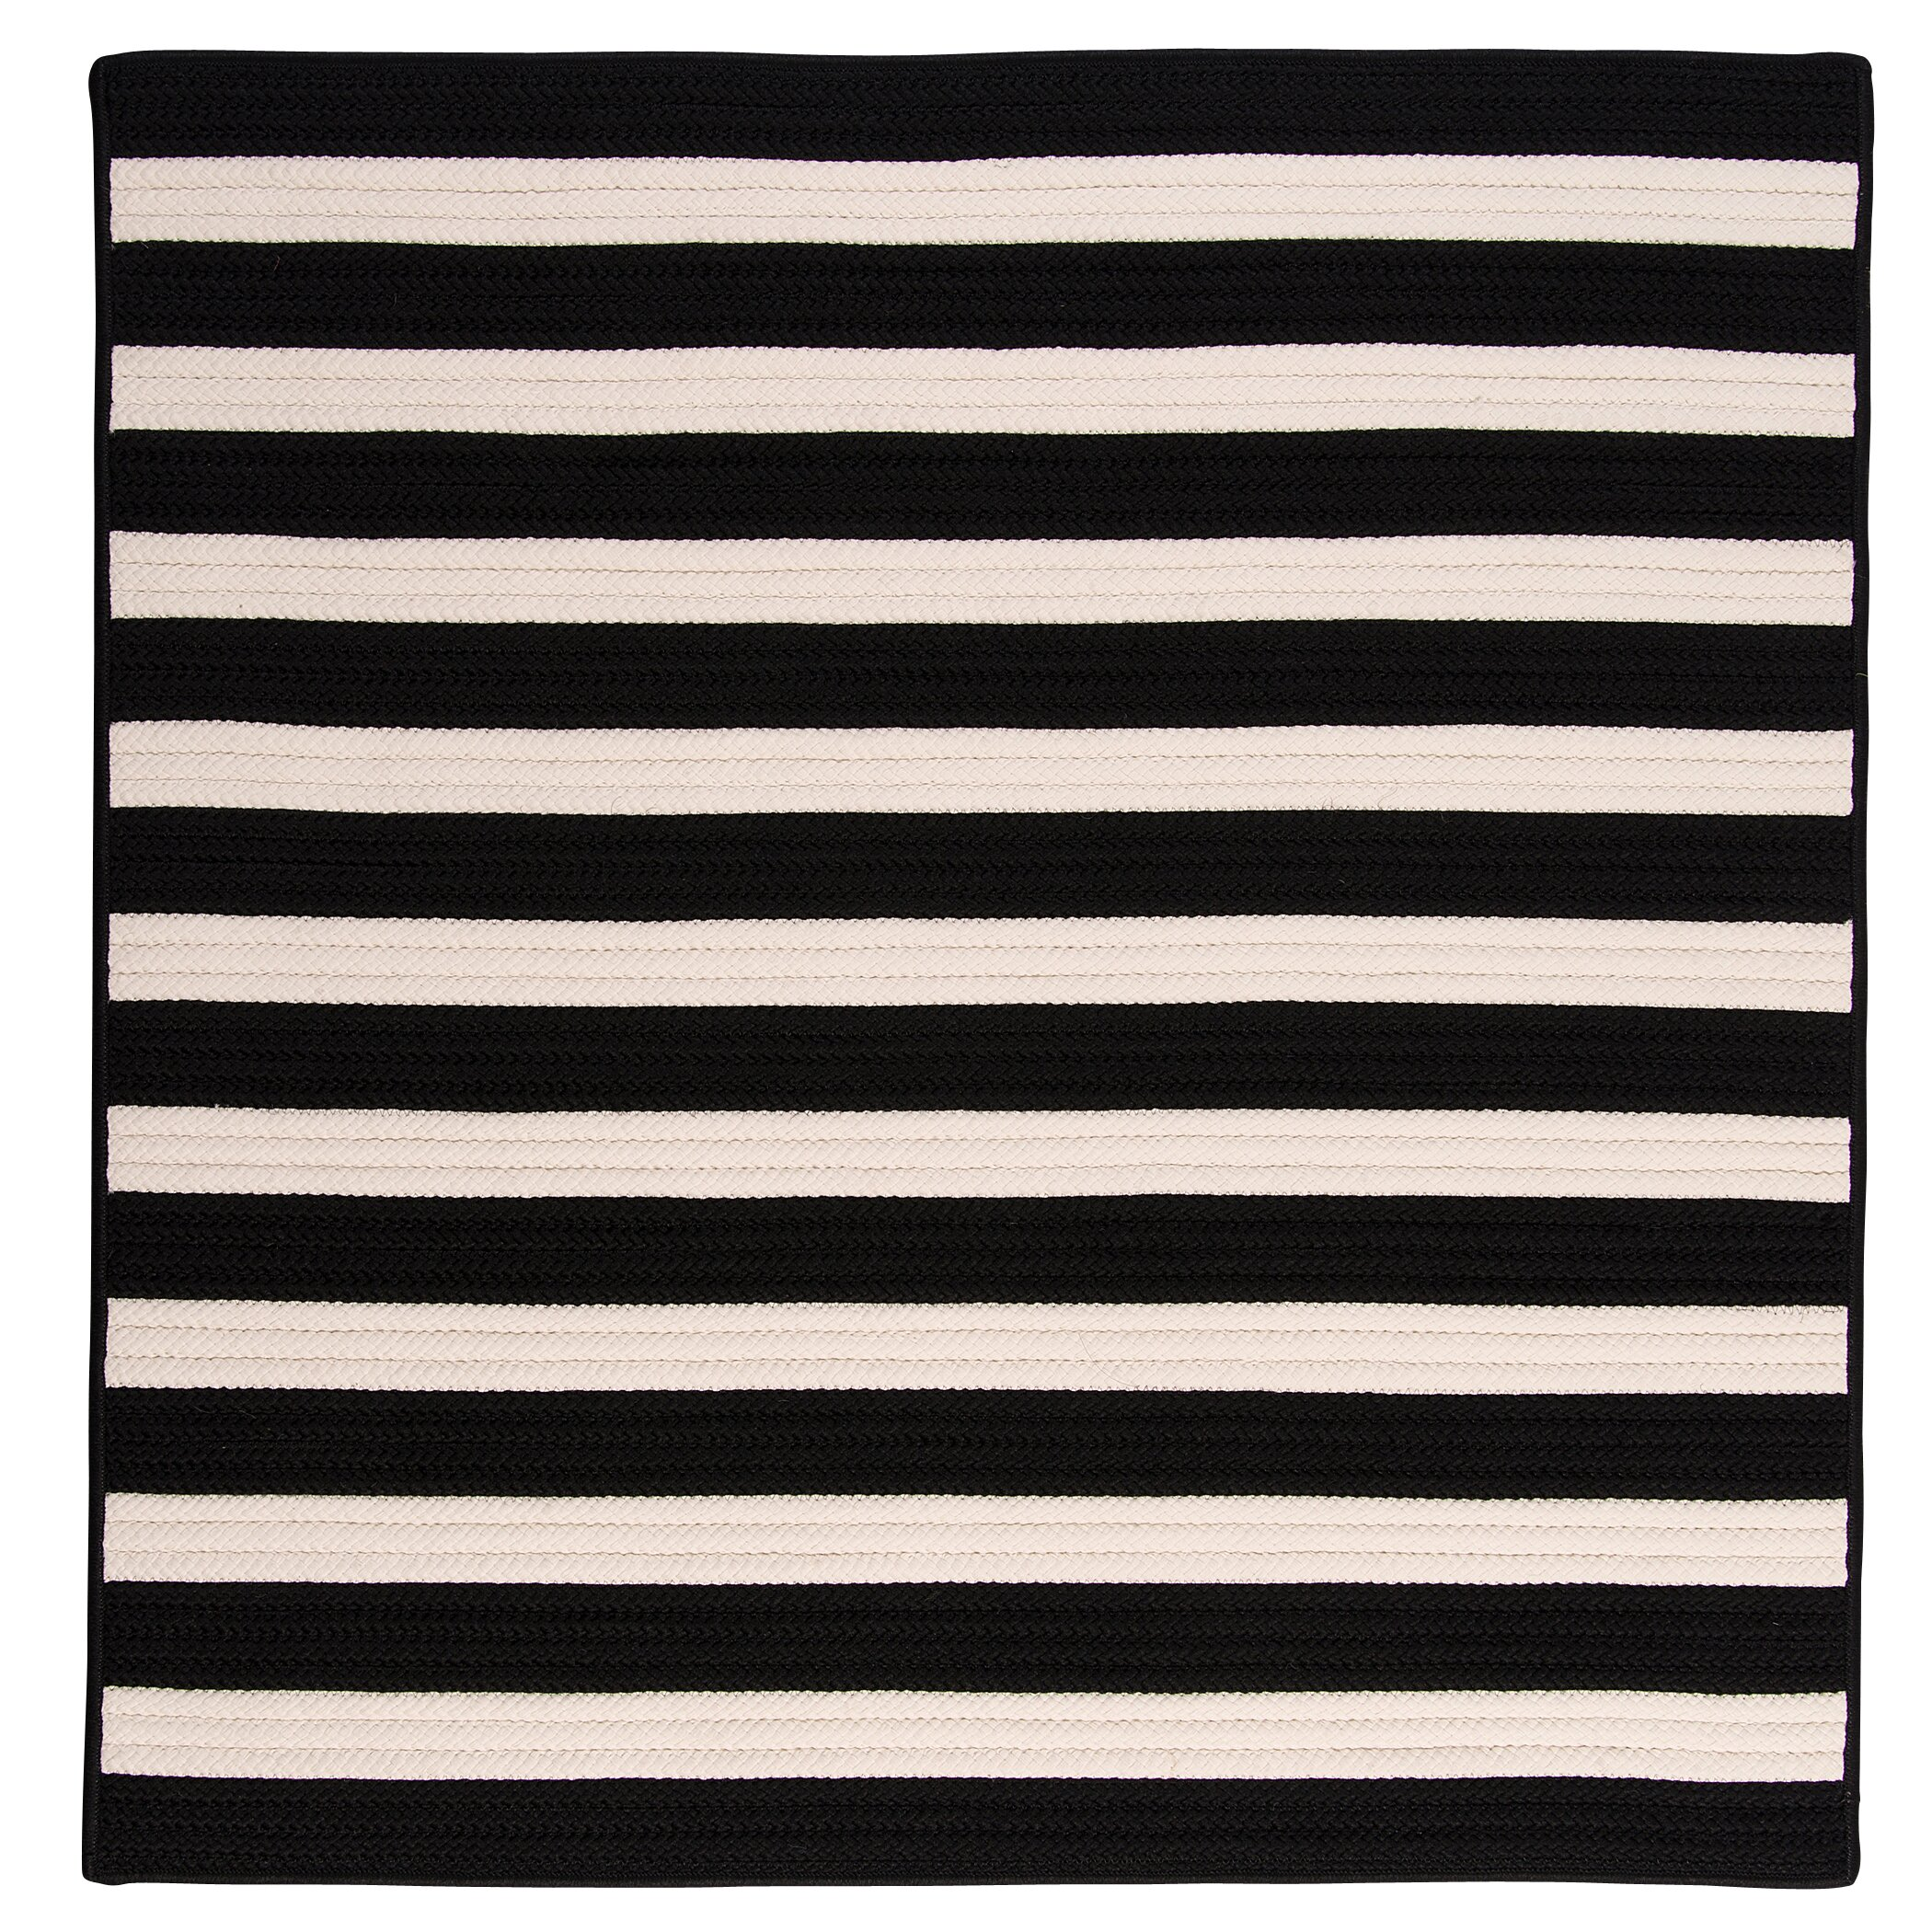 black and cream striped rug  rugs ideas - black and white stripe outdoor rug roselawnlutheran